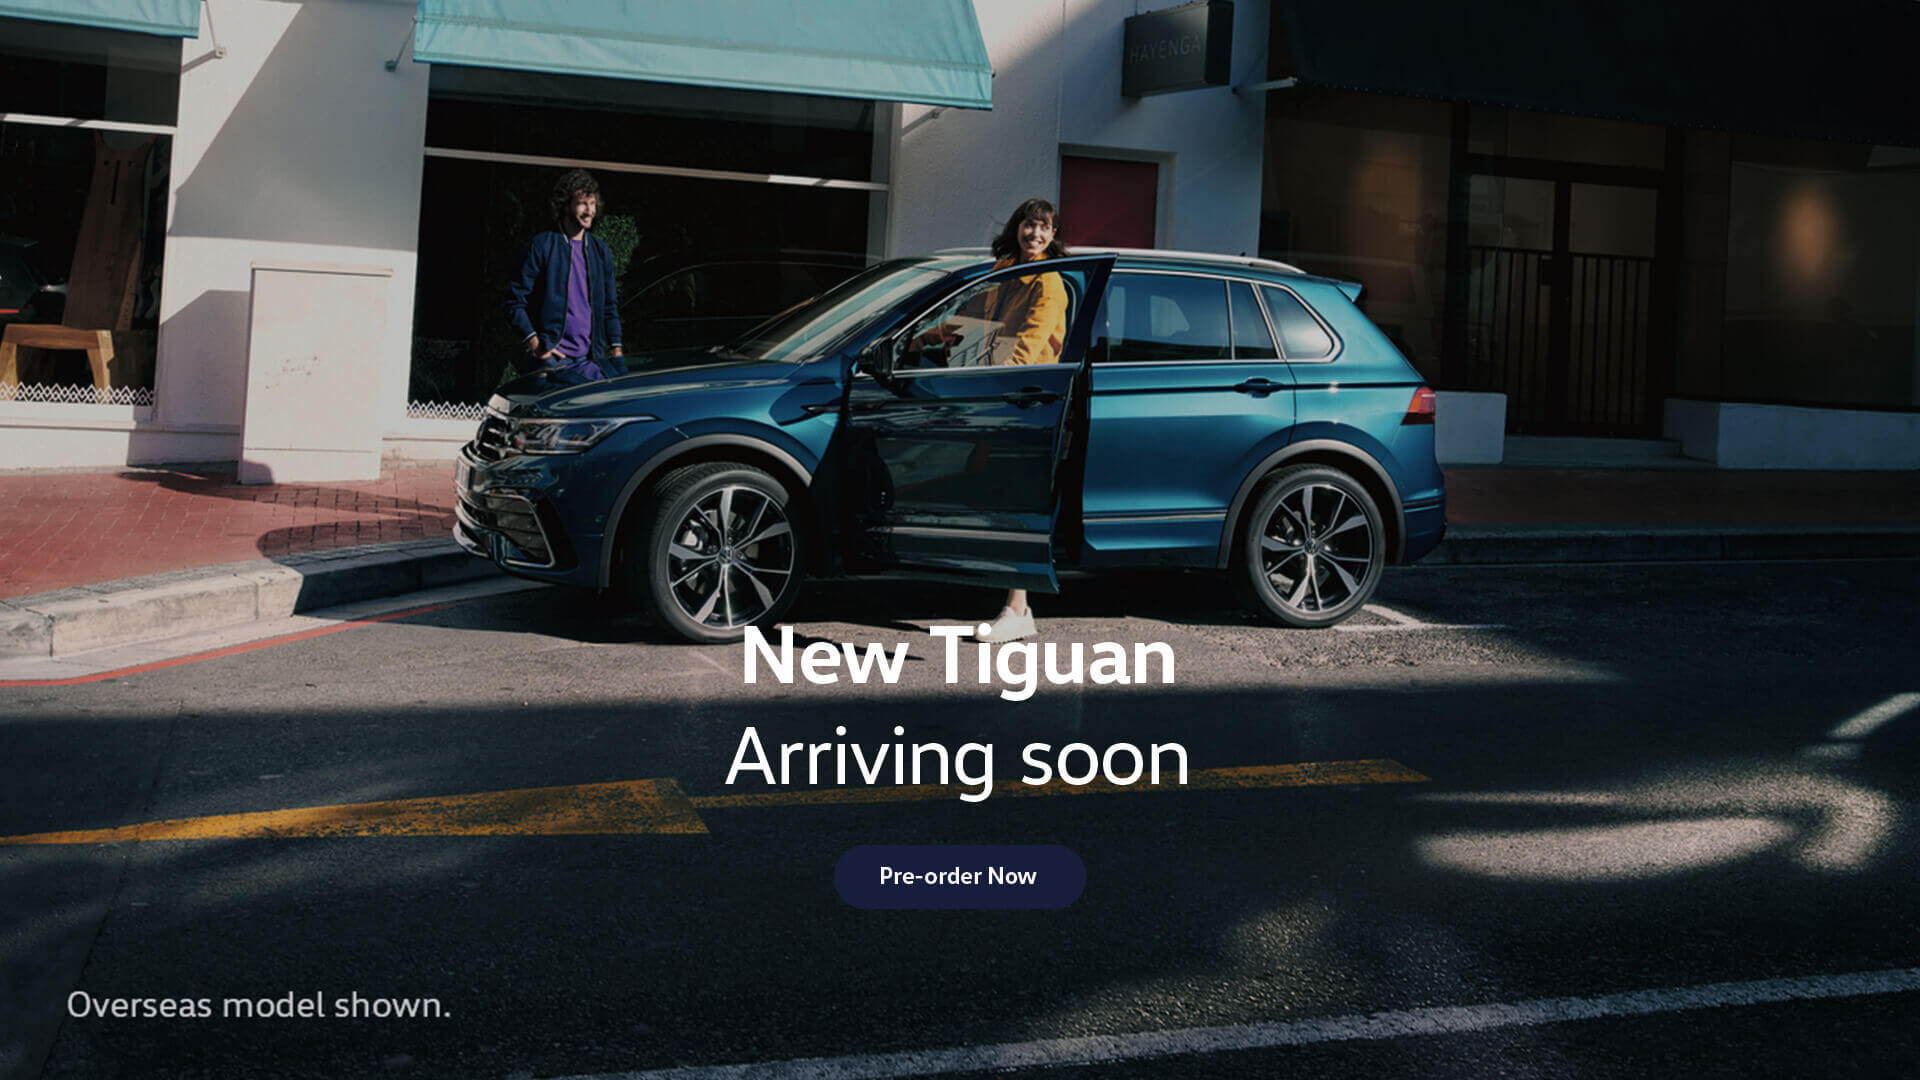 New Volkswagen Tiguan is arriving soon. Pre-order now.